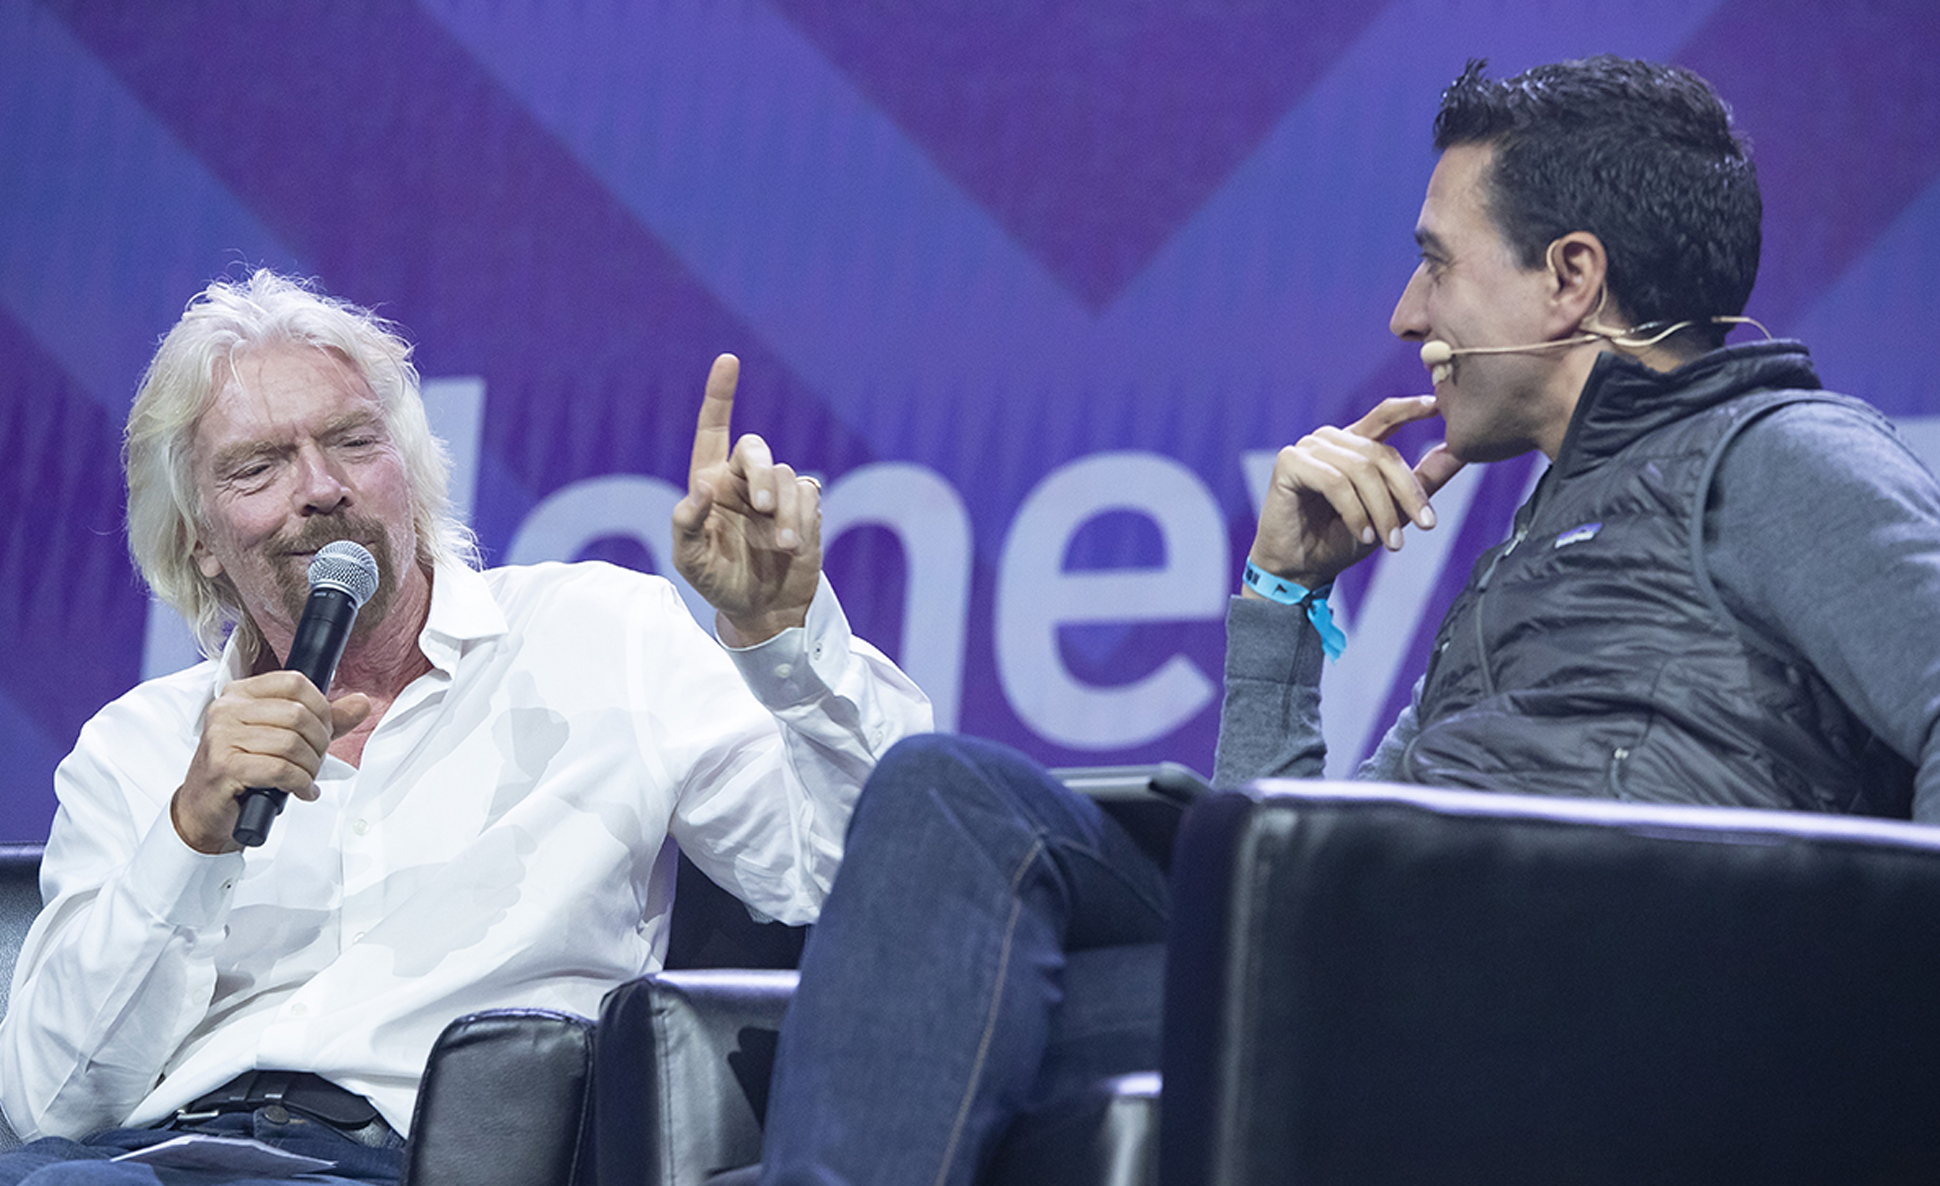 Sir Richard Branson, Money 20/20 keynote